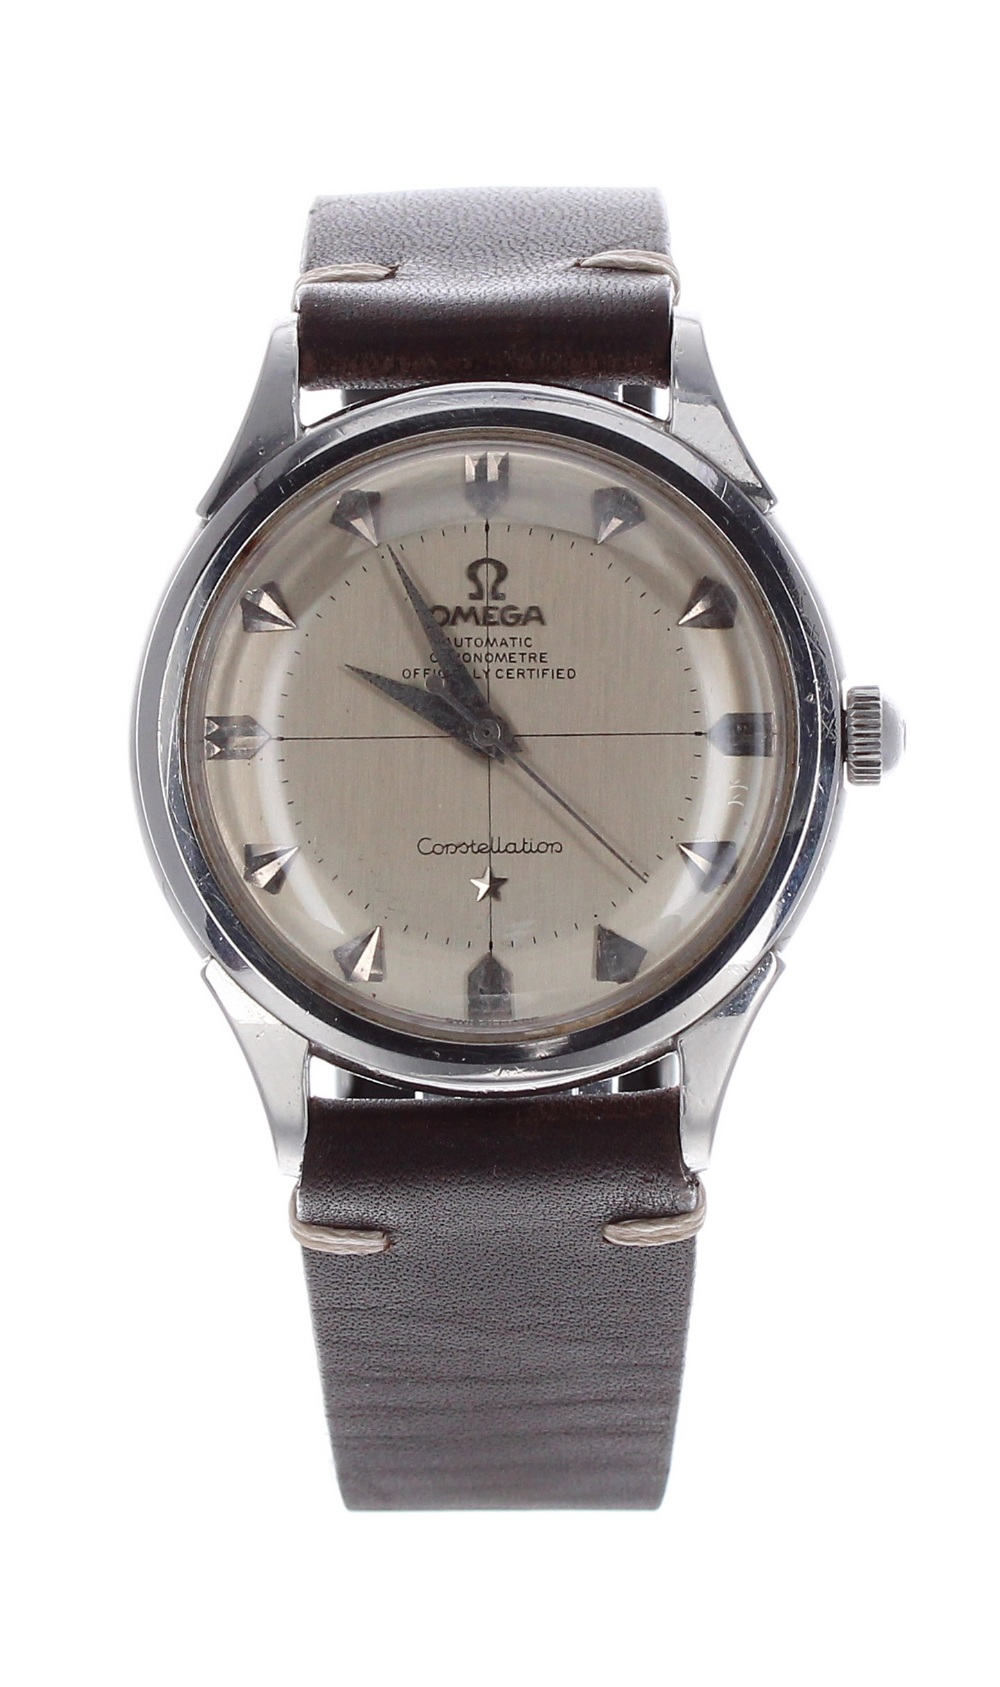 Lot 17 - Omega Constellation Chronometer automatic stainless steel gentleman's wristwatch, ref. 2852 8SC,